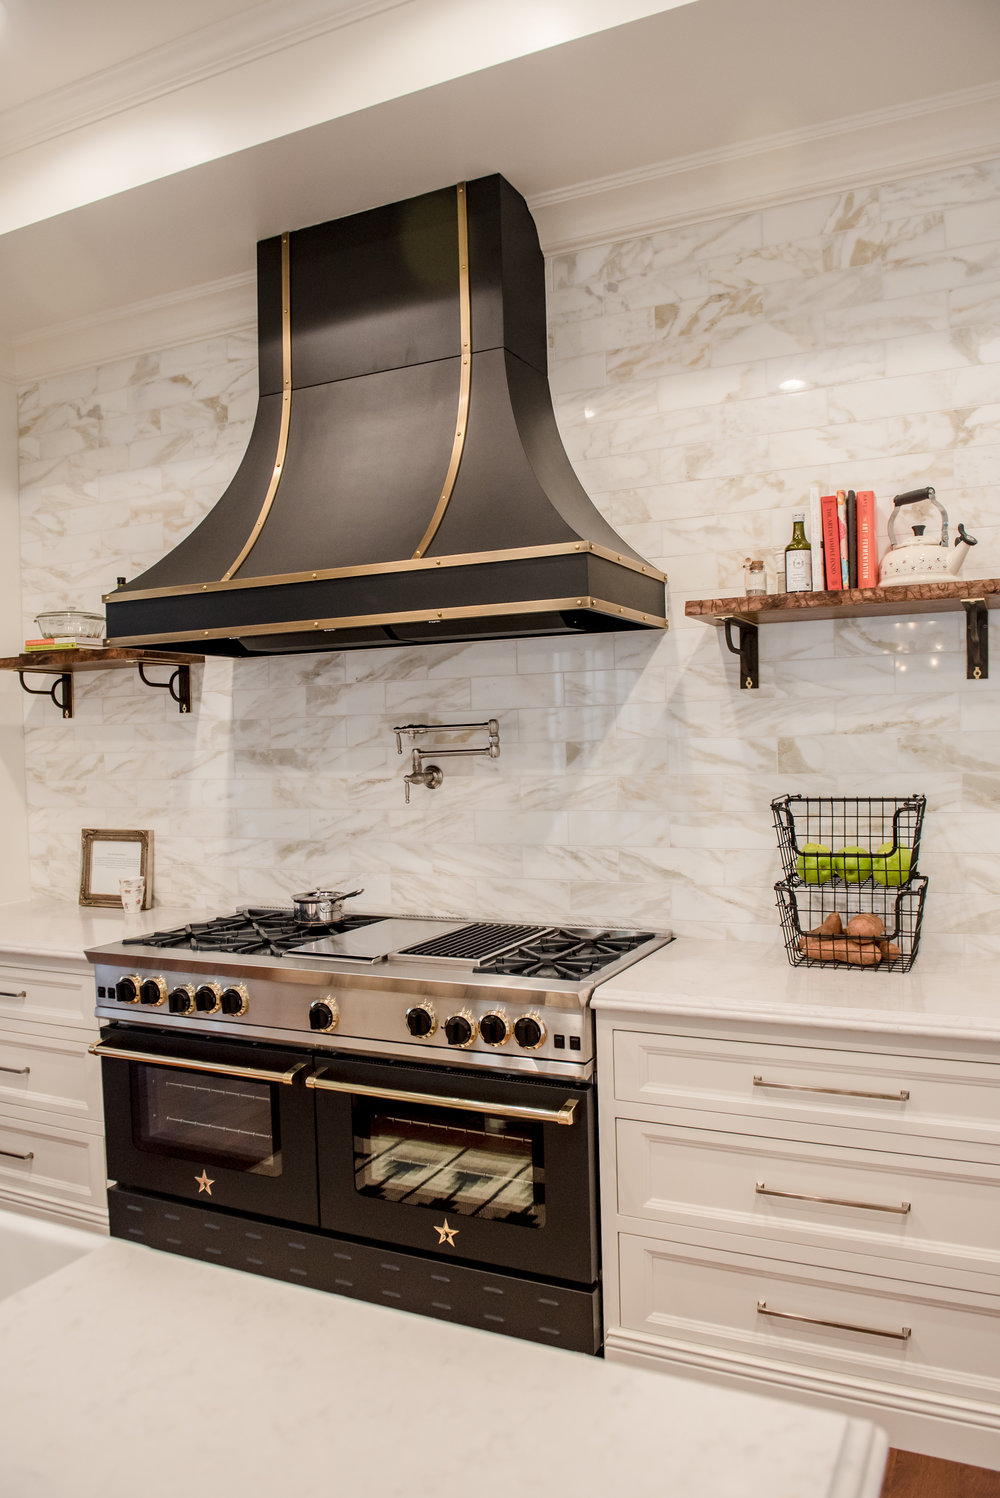 18+Kitchen+CustomHood+Brass+Black+Range+Marble+Calacatta+Openshelves.jpg